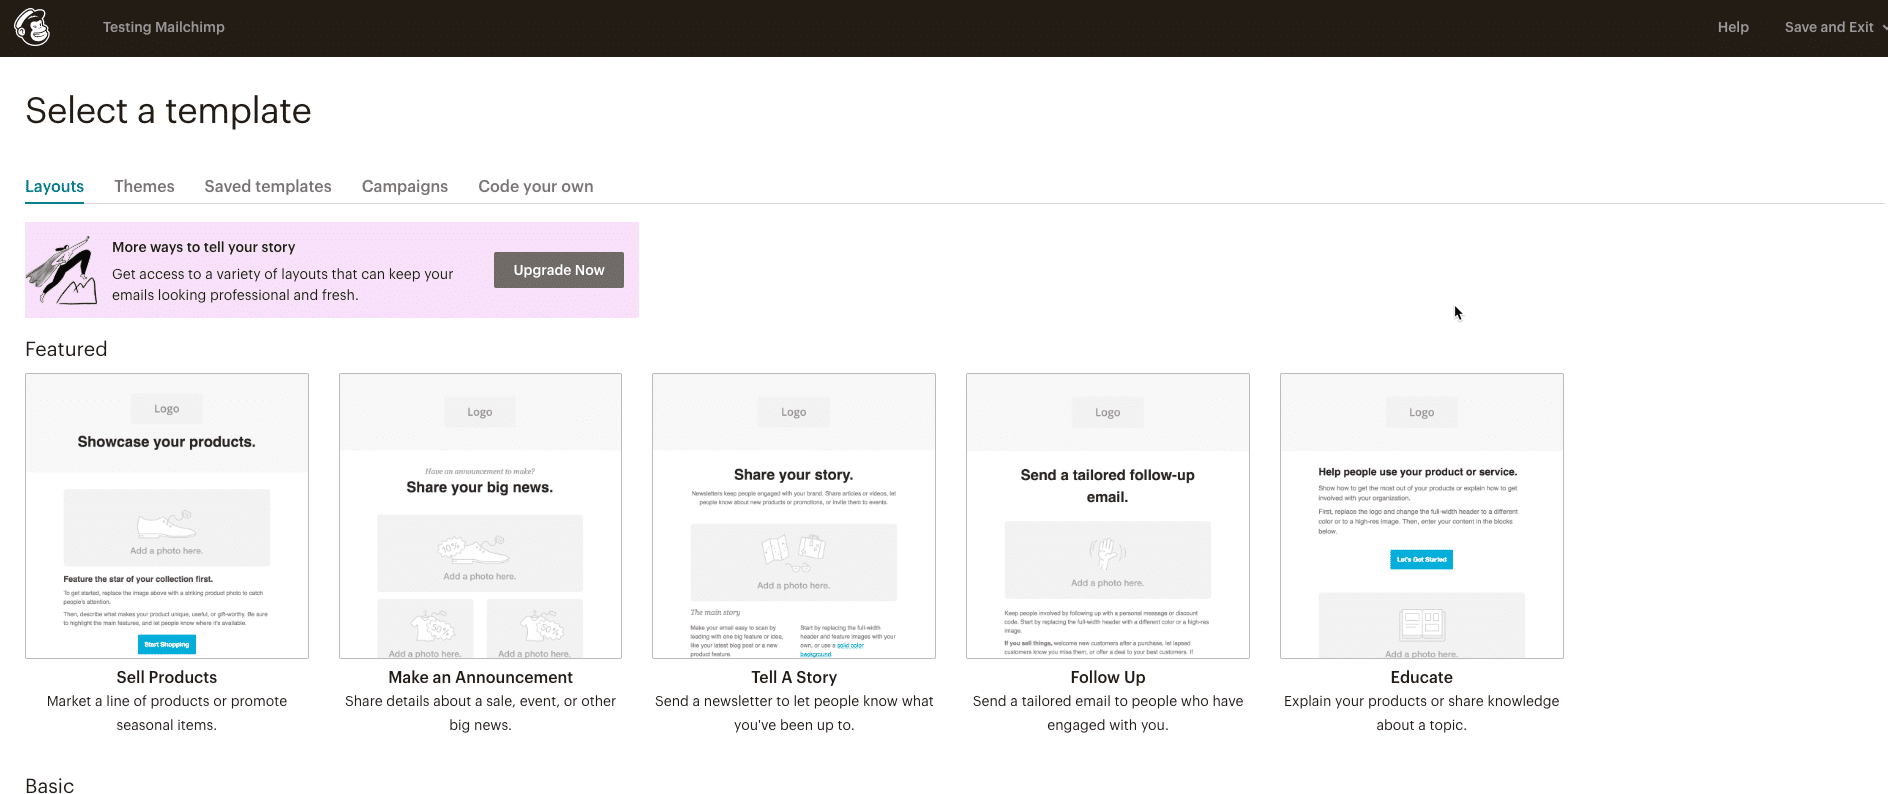 E-Mail-Layouts in Mailchimp